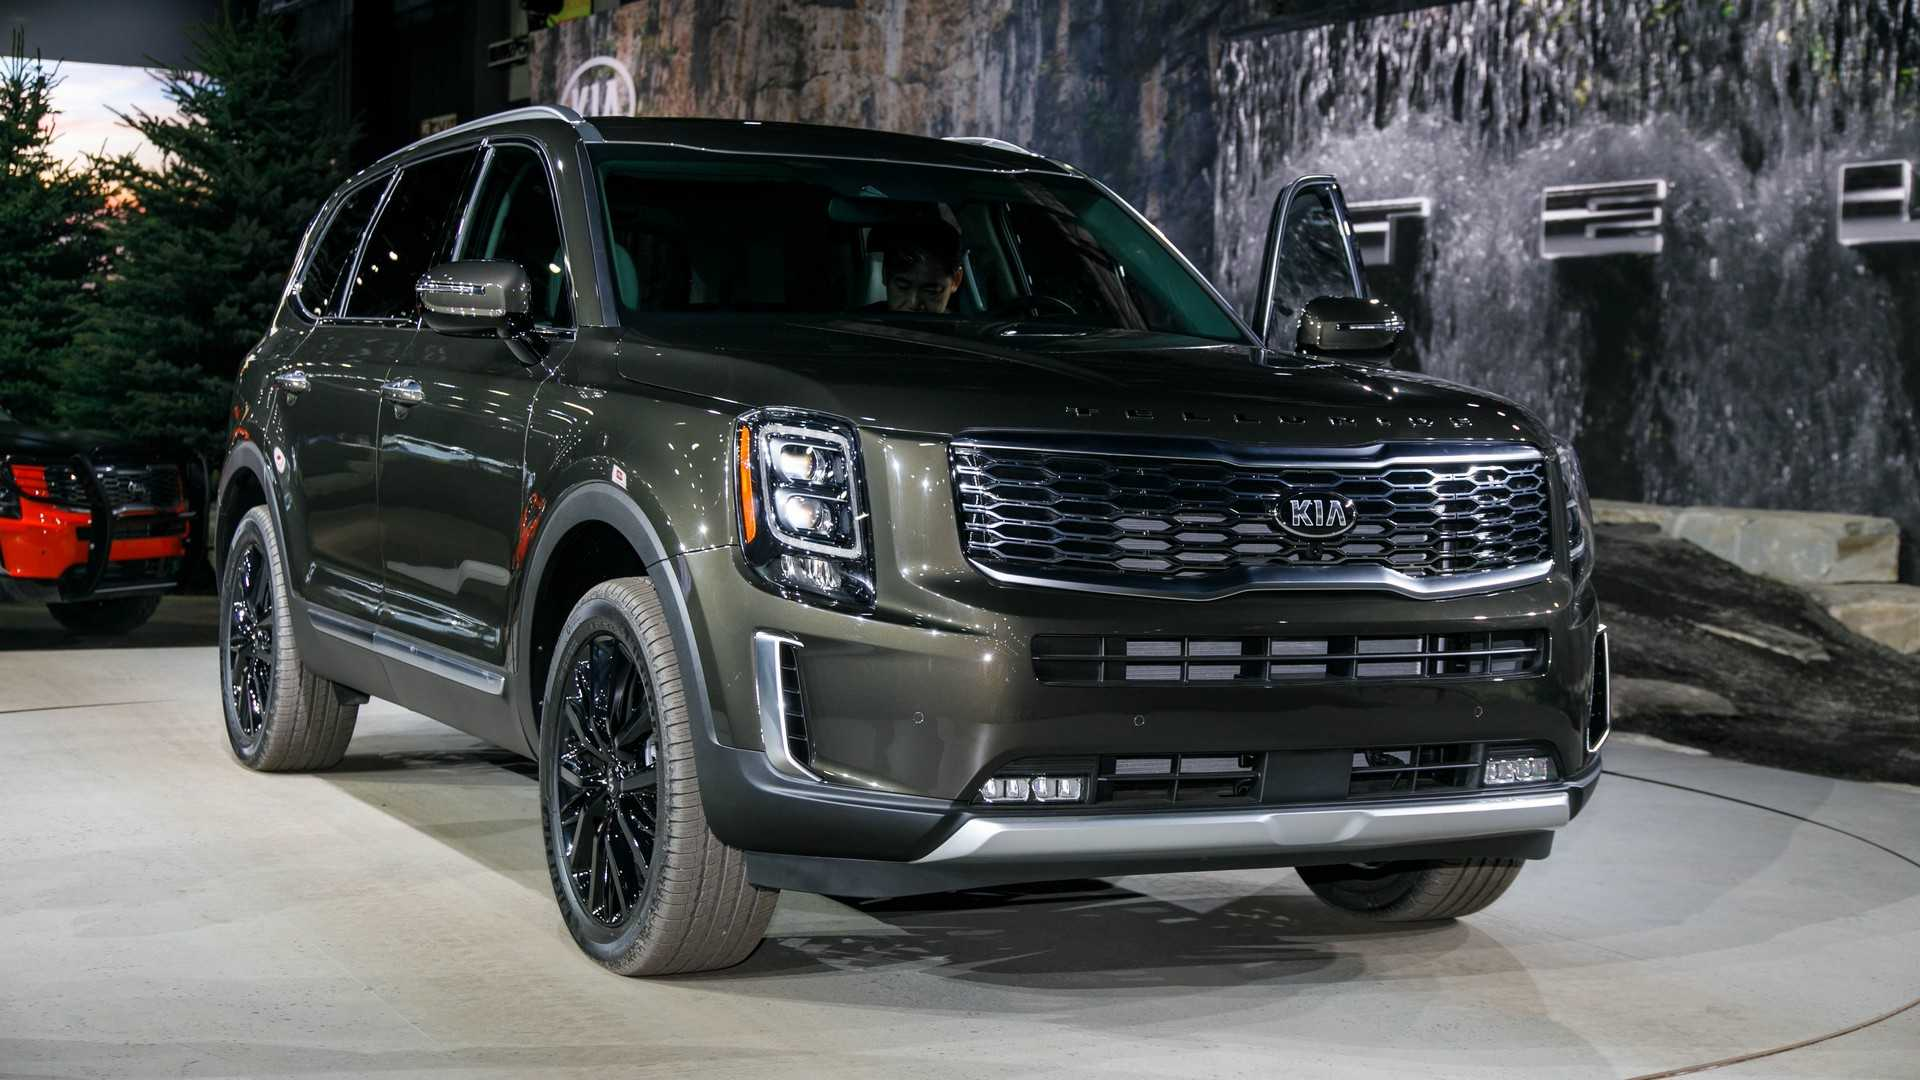 74 All New 2020 Kia Telluride Vs Dodge Durango Research New